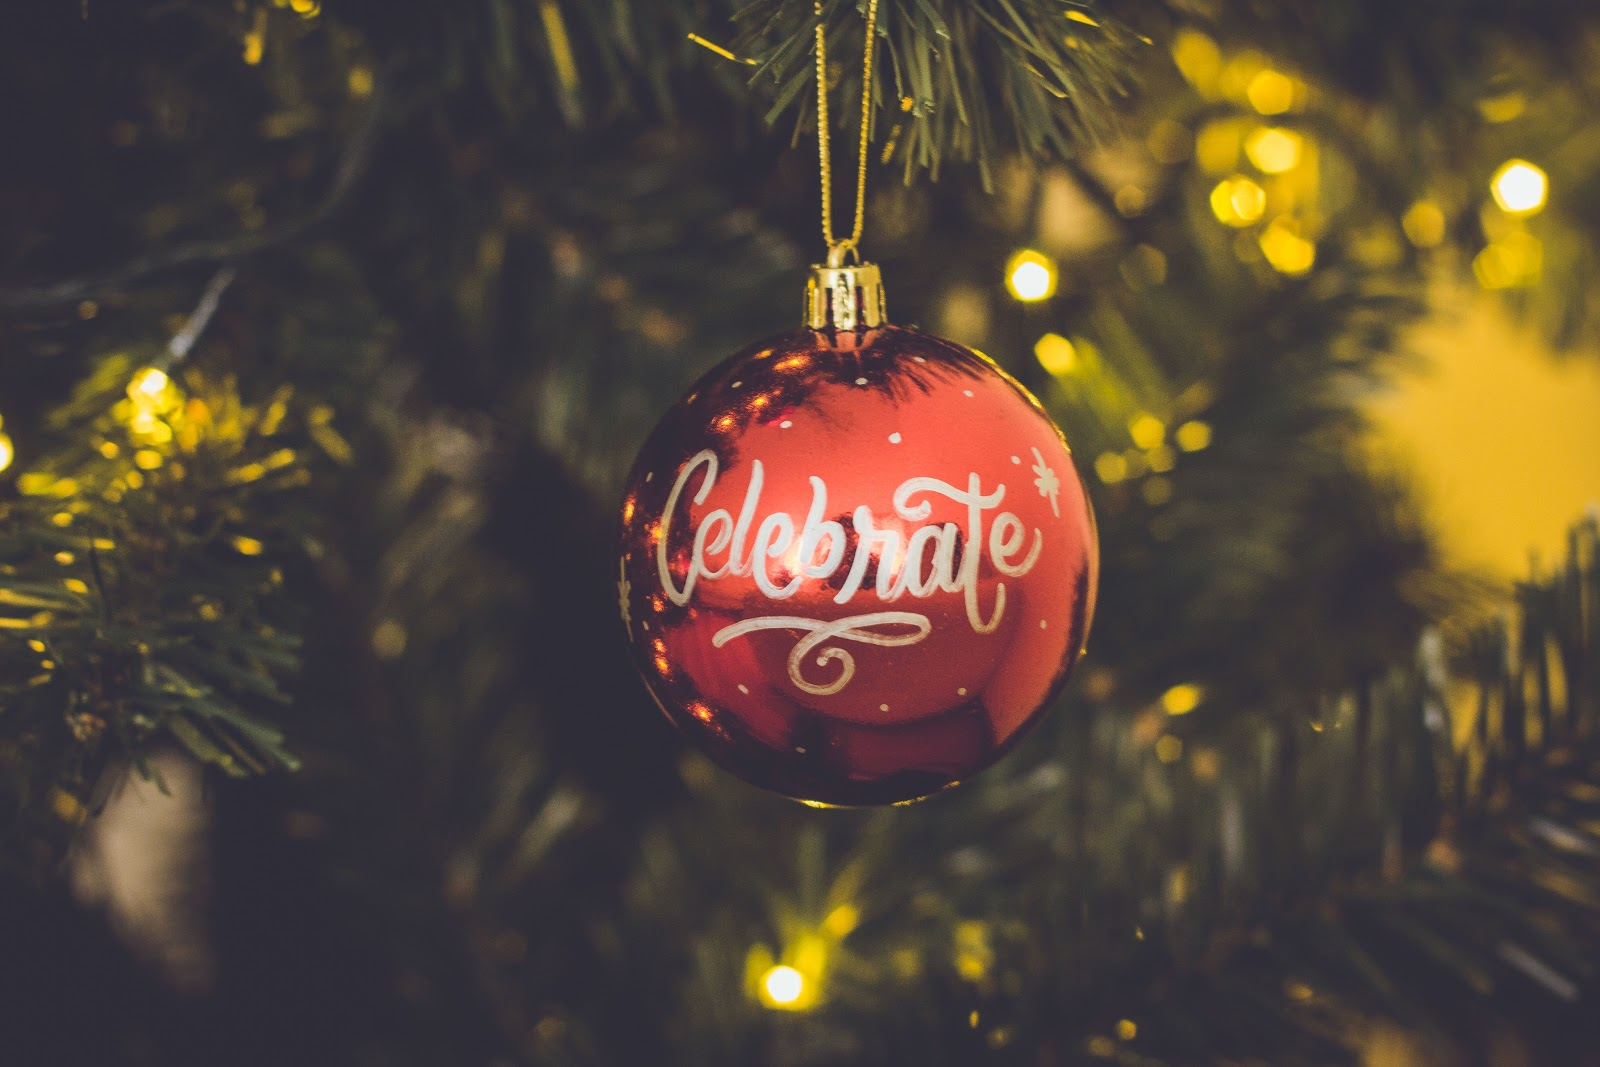 Celebrate holiday ornament